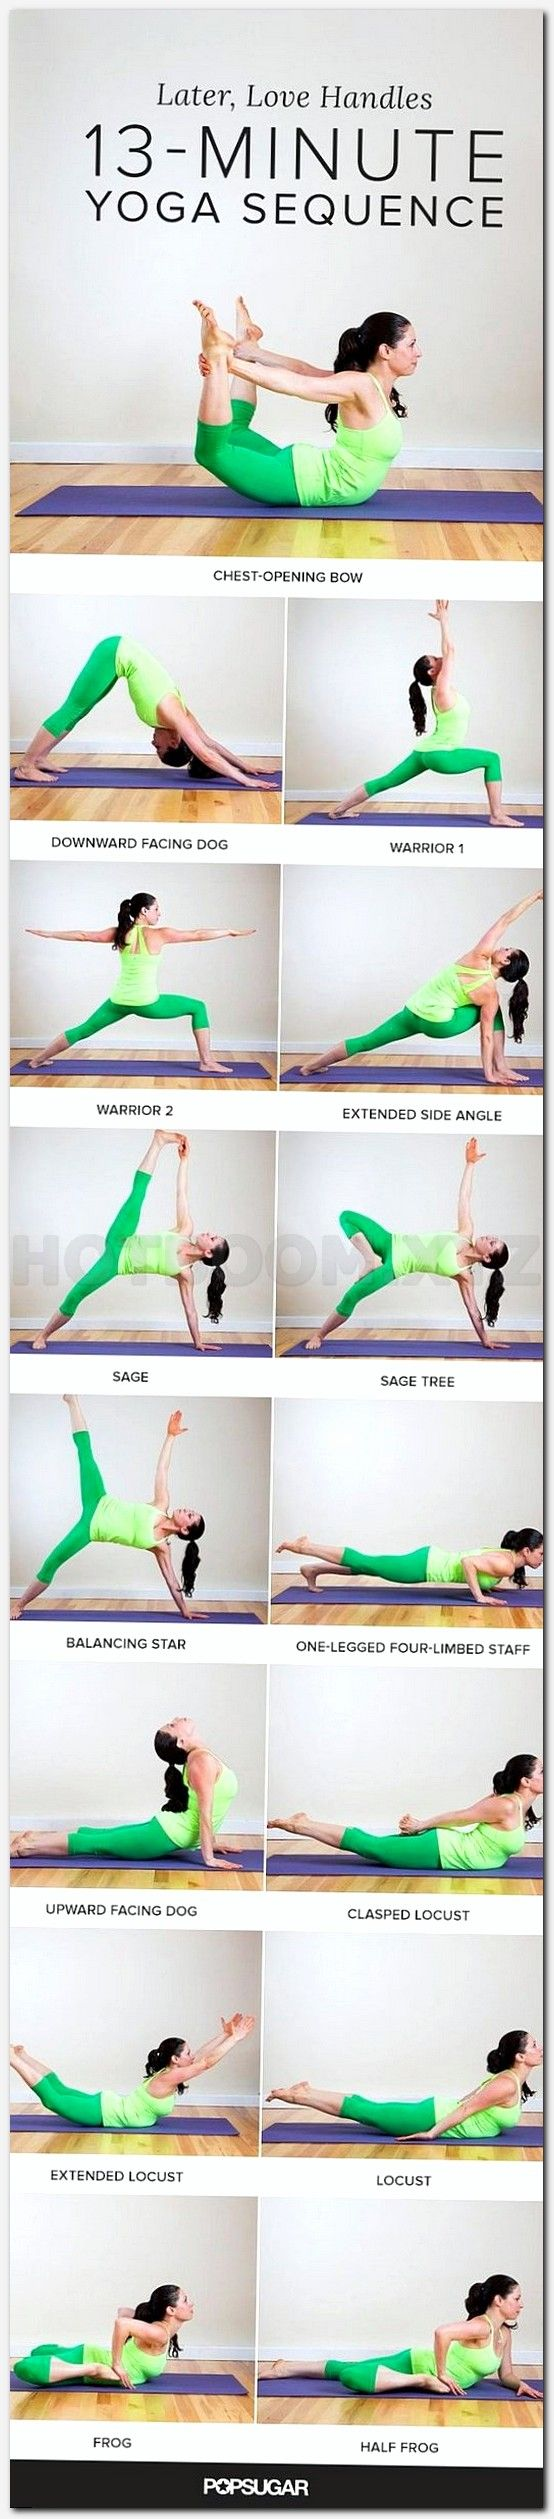 yoga shakti, yoga sequences, yoga for stomach fat loss in telugu, lose stomach fat, acupuncture for weight loss nj, yoga tips in telugu, weight loss patanjali, yoga routine to lose weight, how to do yoga at home to reduce weight, yoga sequences for beginn